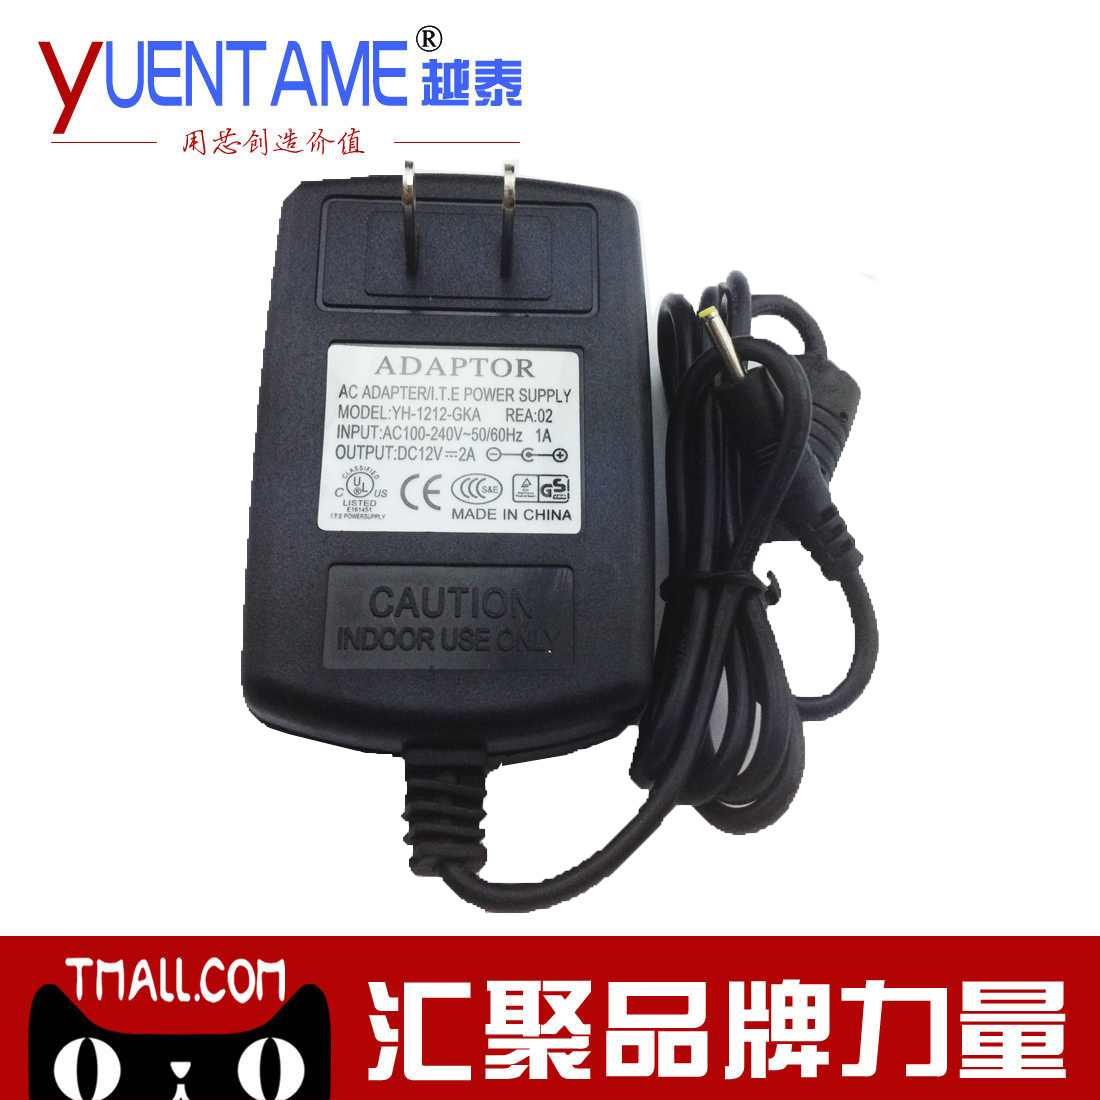 12v2a u9gt2 n90 patriot e700 v9 u30gt tablet charger